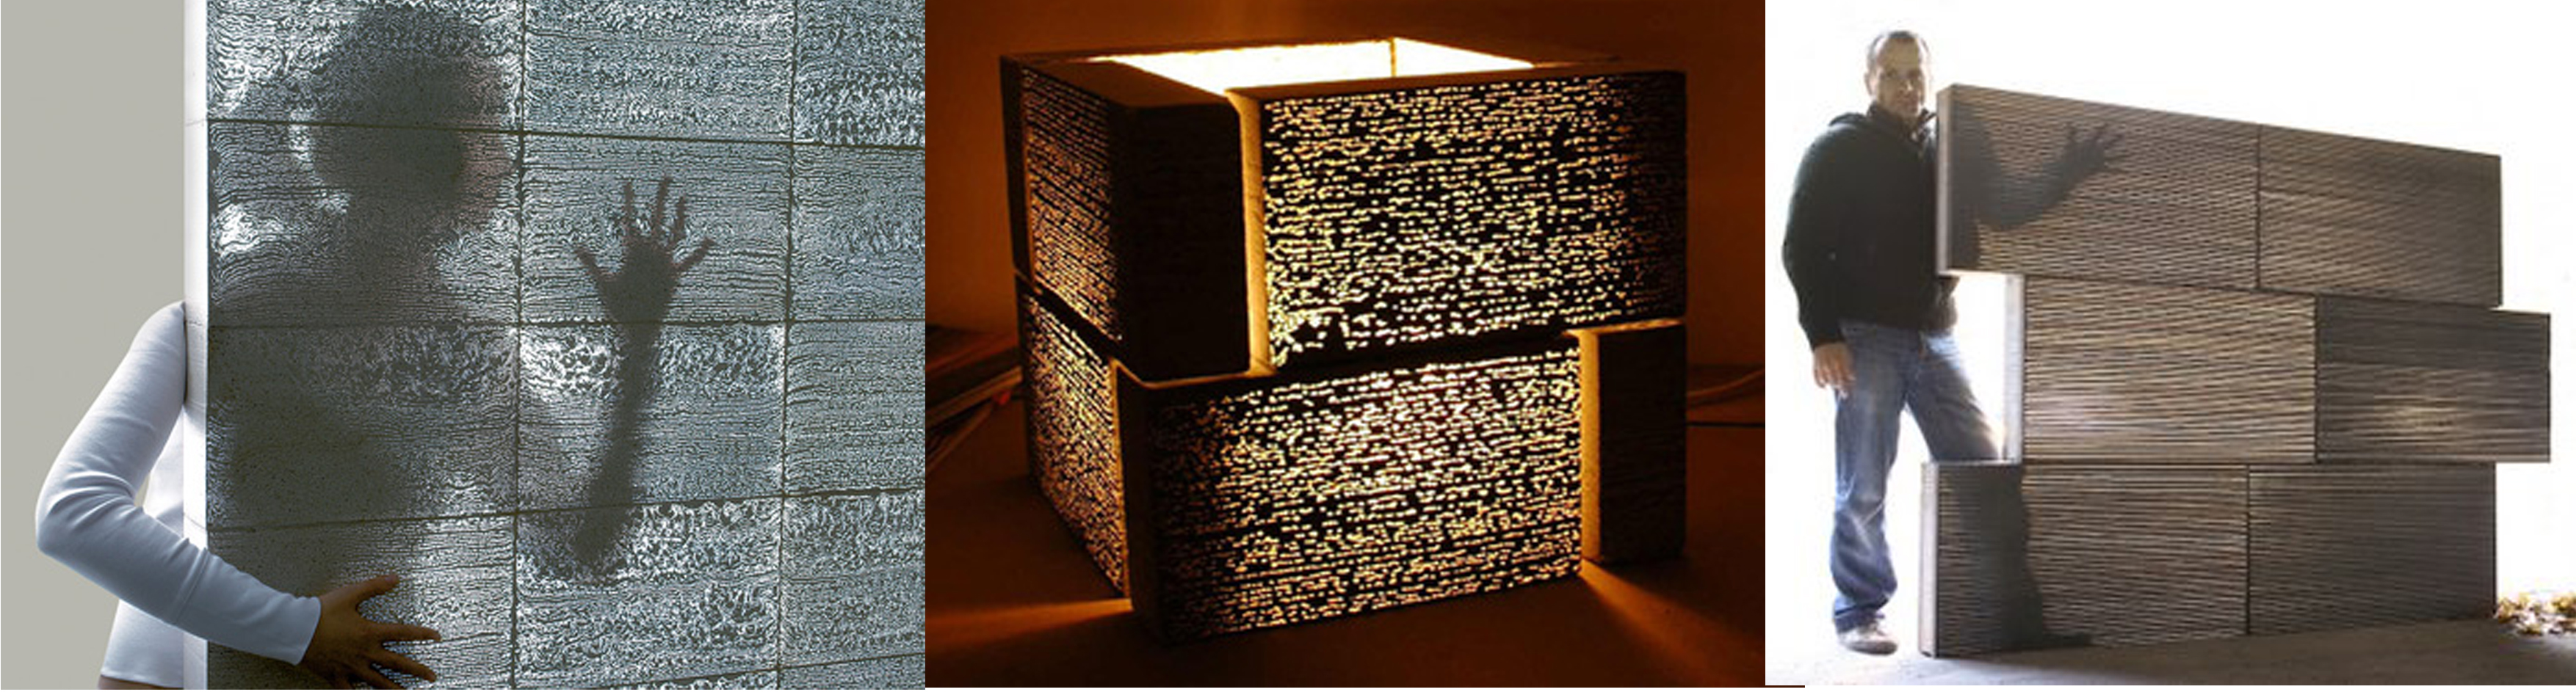 This special concrete tile allows light to pass through. The tile contains  optical fibers that make up about 5% of its surface area.